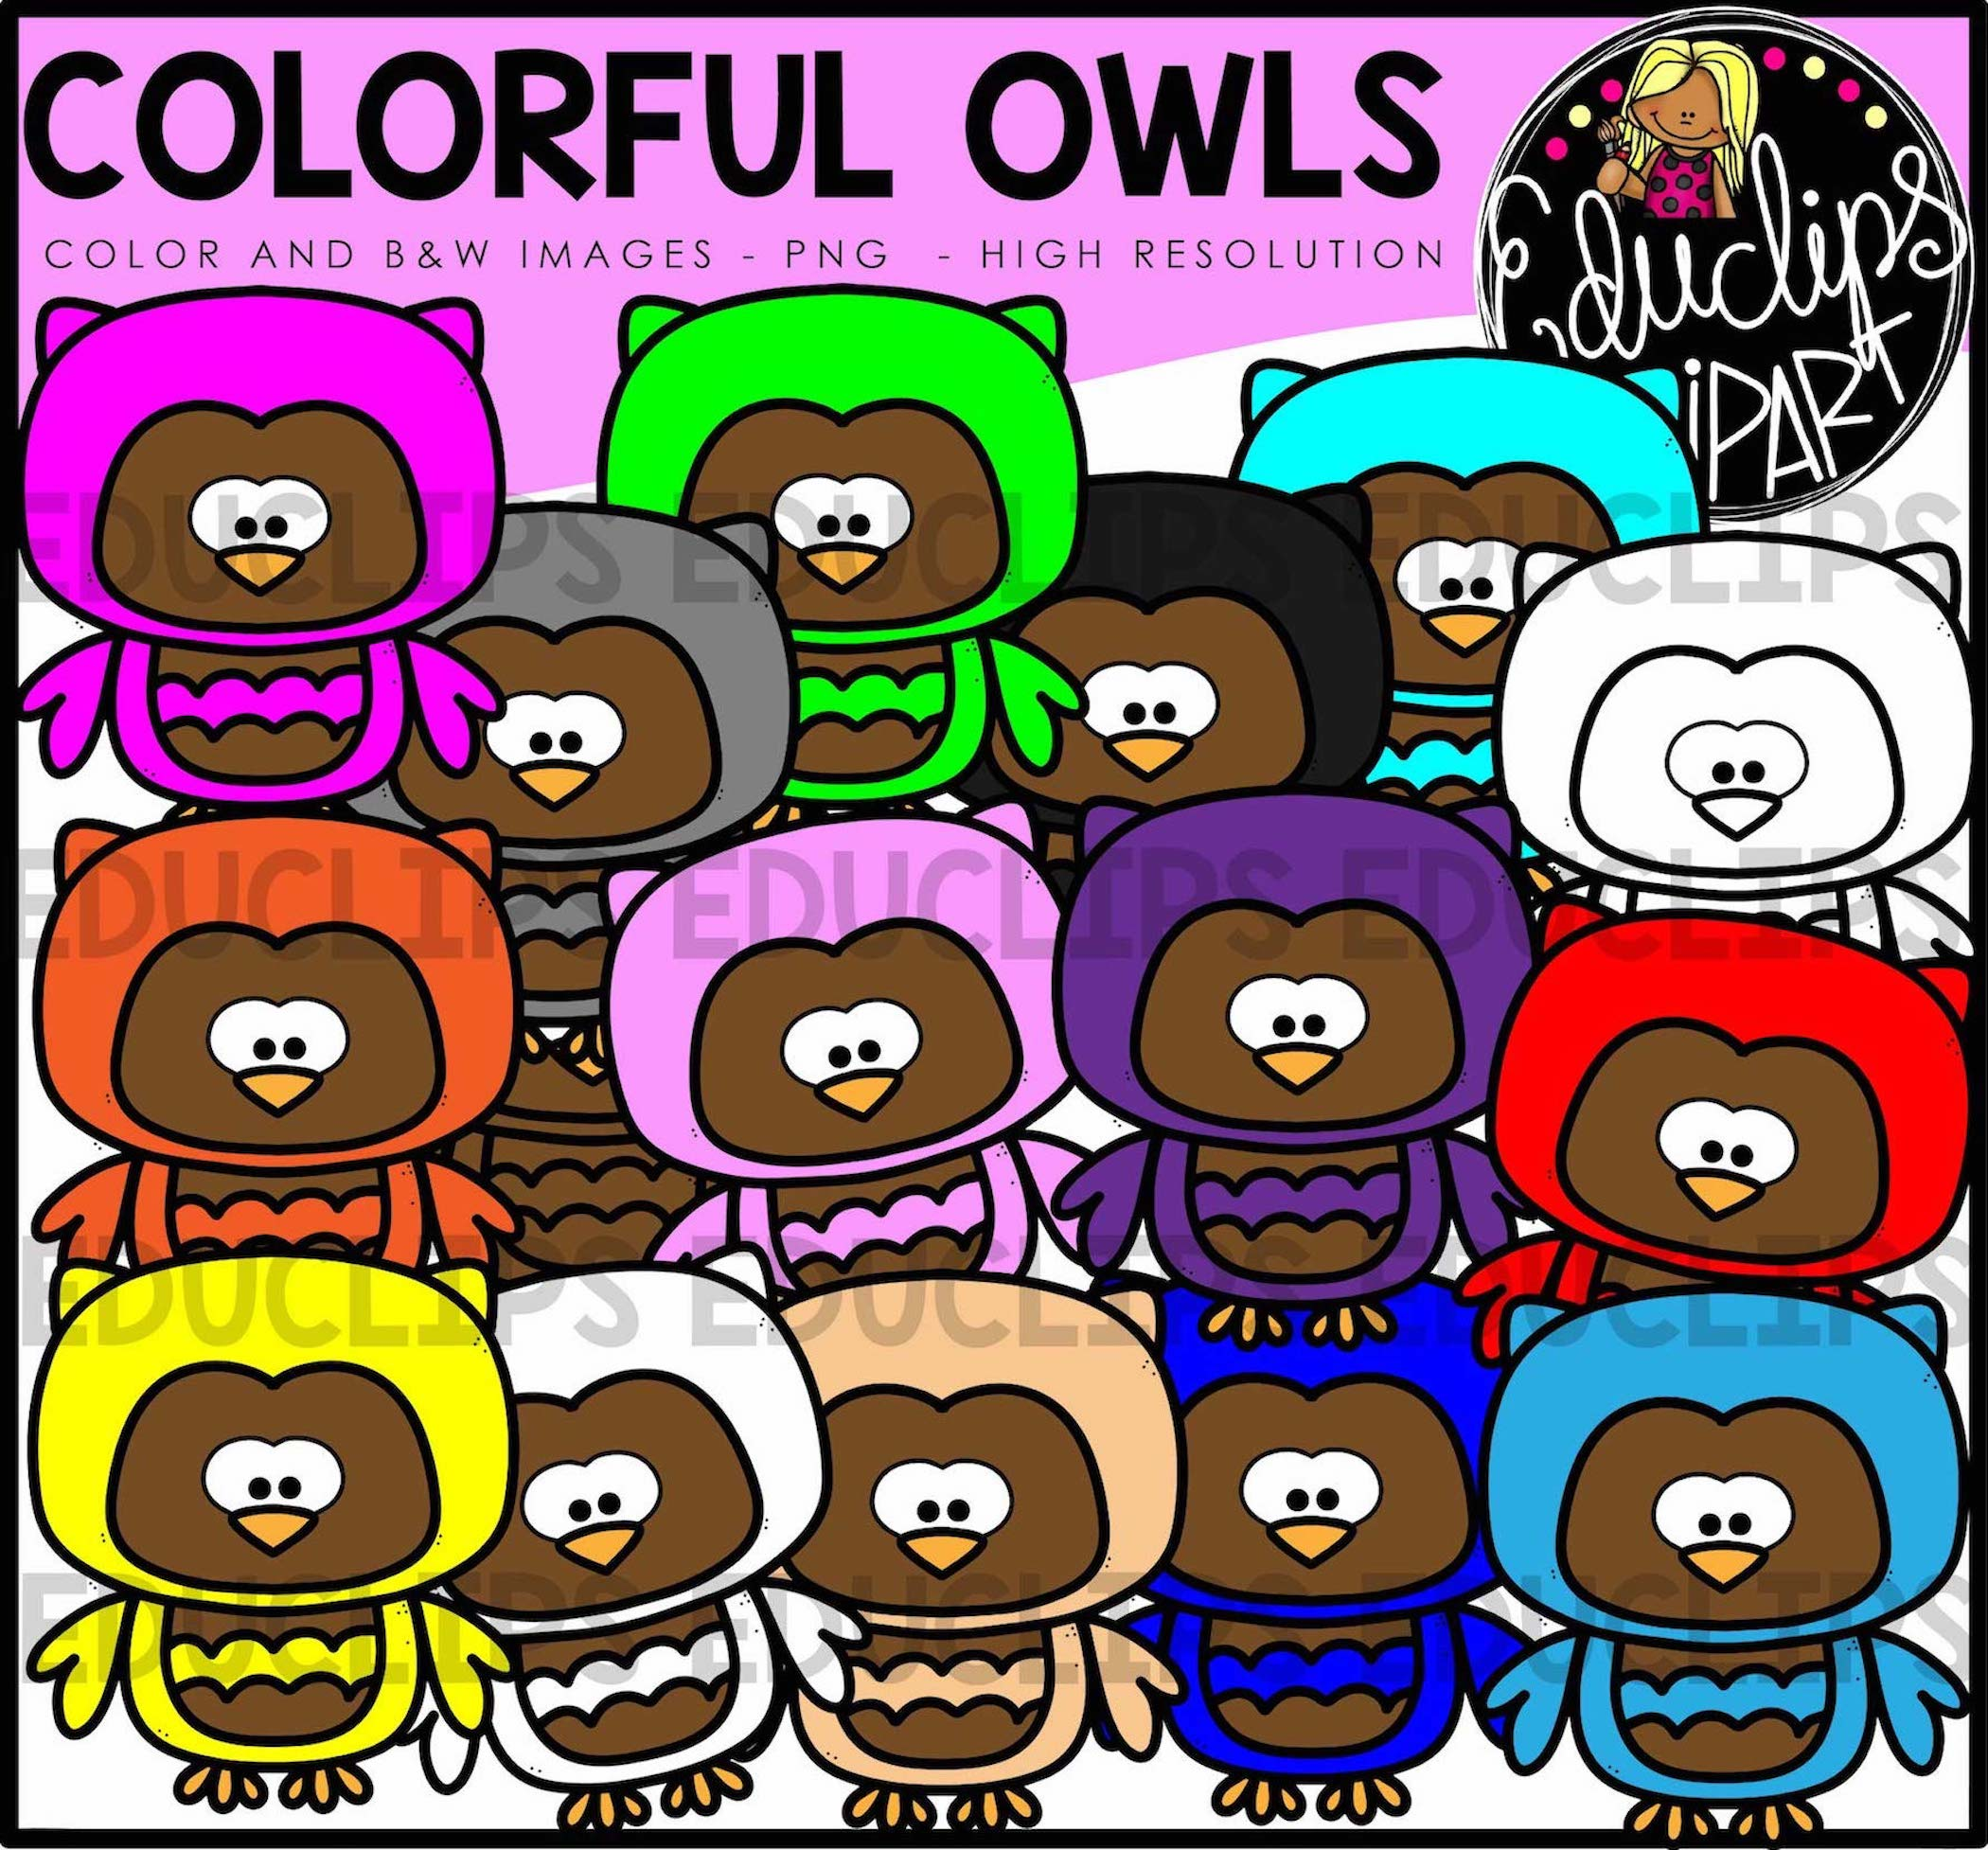 Colorful Pictures Of Owls Colorful Owls Clip Art Bundle Color And B Andw Welcome To